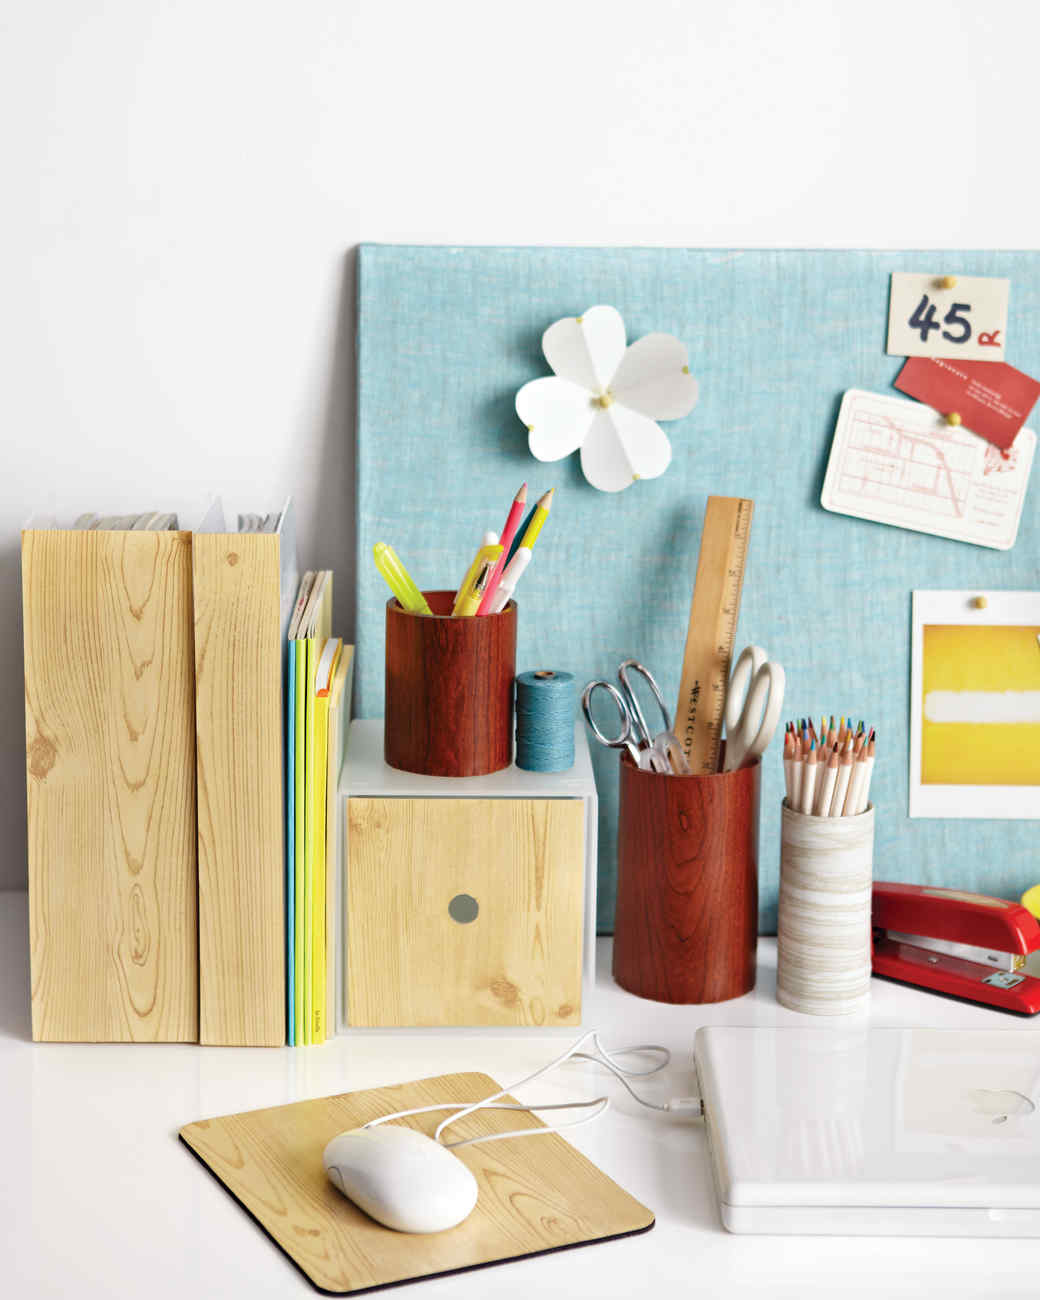 Diy office desk accessories Homemade Woodgrain Office Accessories Martha Stewart Wood Grain Office Accessories Martha Stewart